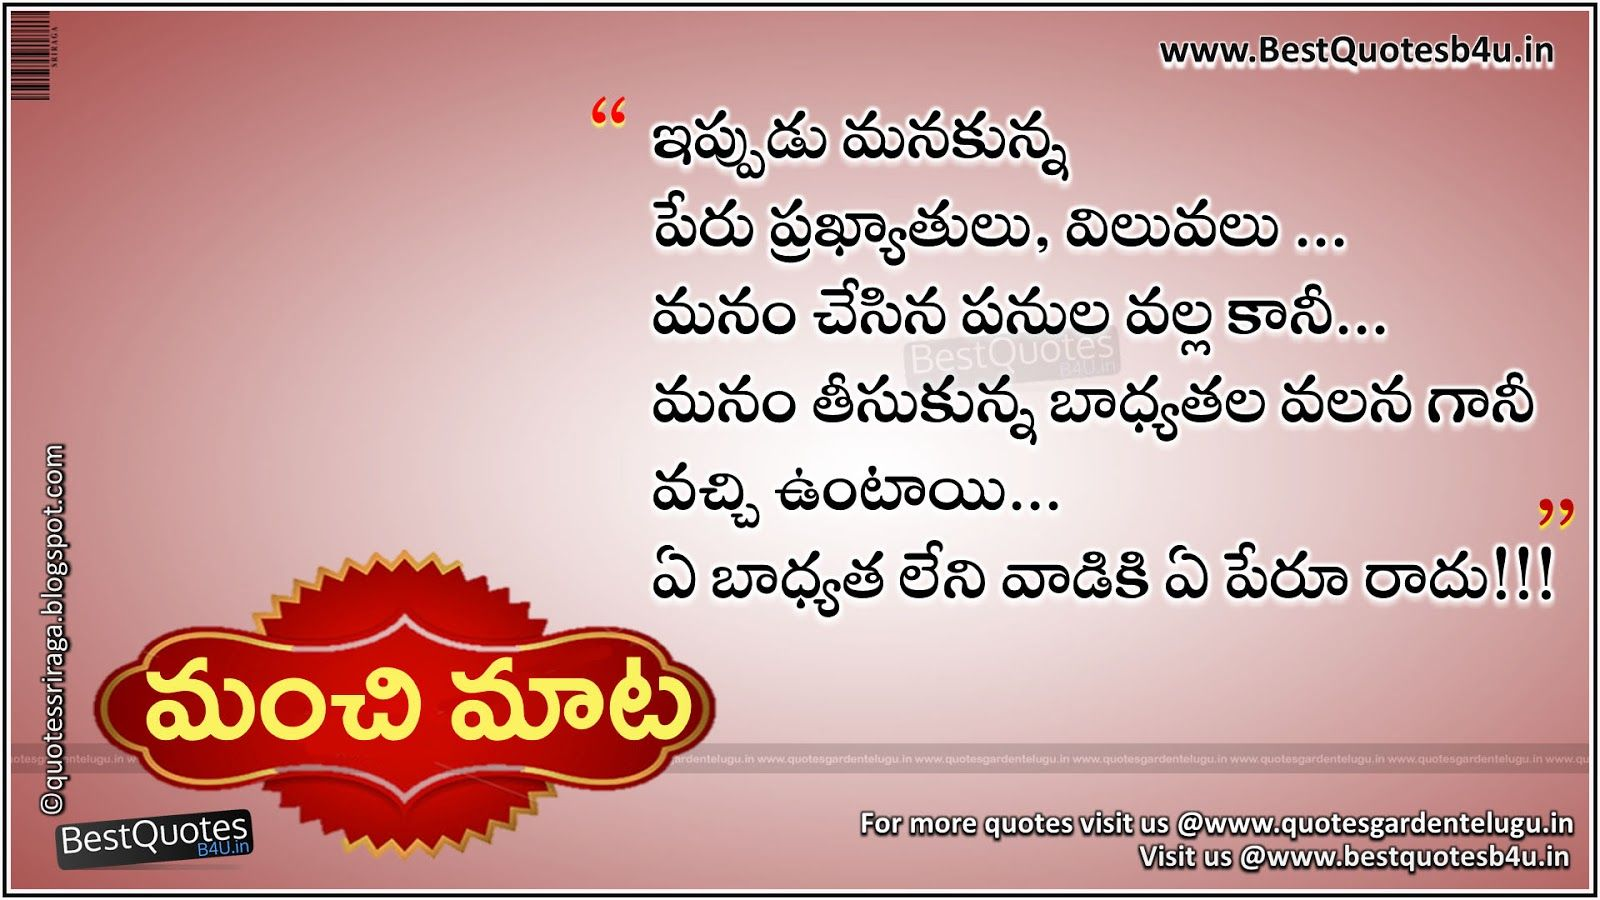 Pin By Suresh Kumar On Life Quotations Telugu Inspirational Quotes